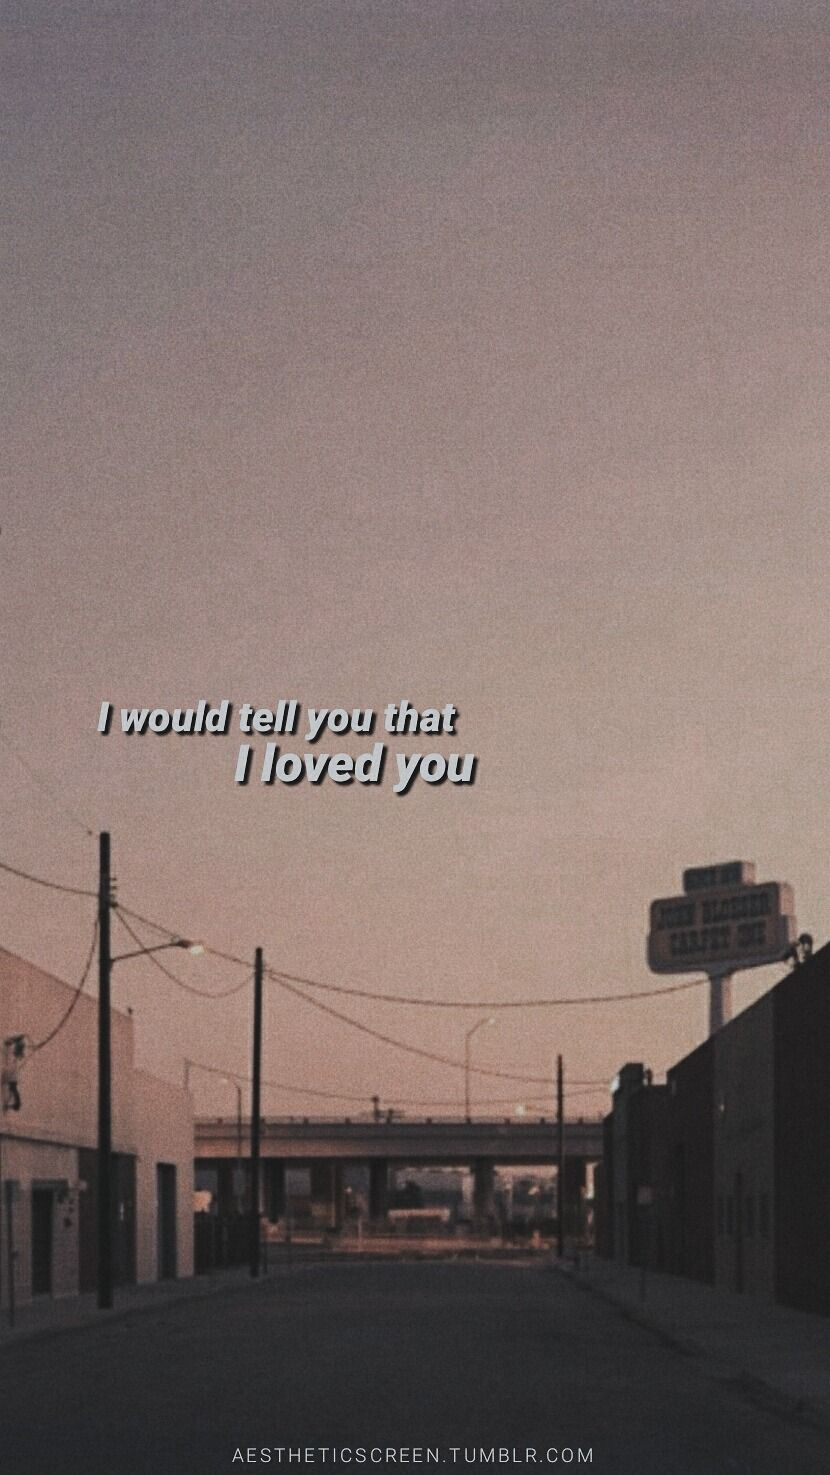 Sad Tumblr Backgrounds : tumblr, backgrounds, Wallpaper, Tumblr, Iphone, Love,, Quotes, Wallpaper,, Phone, Wallpapers